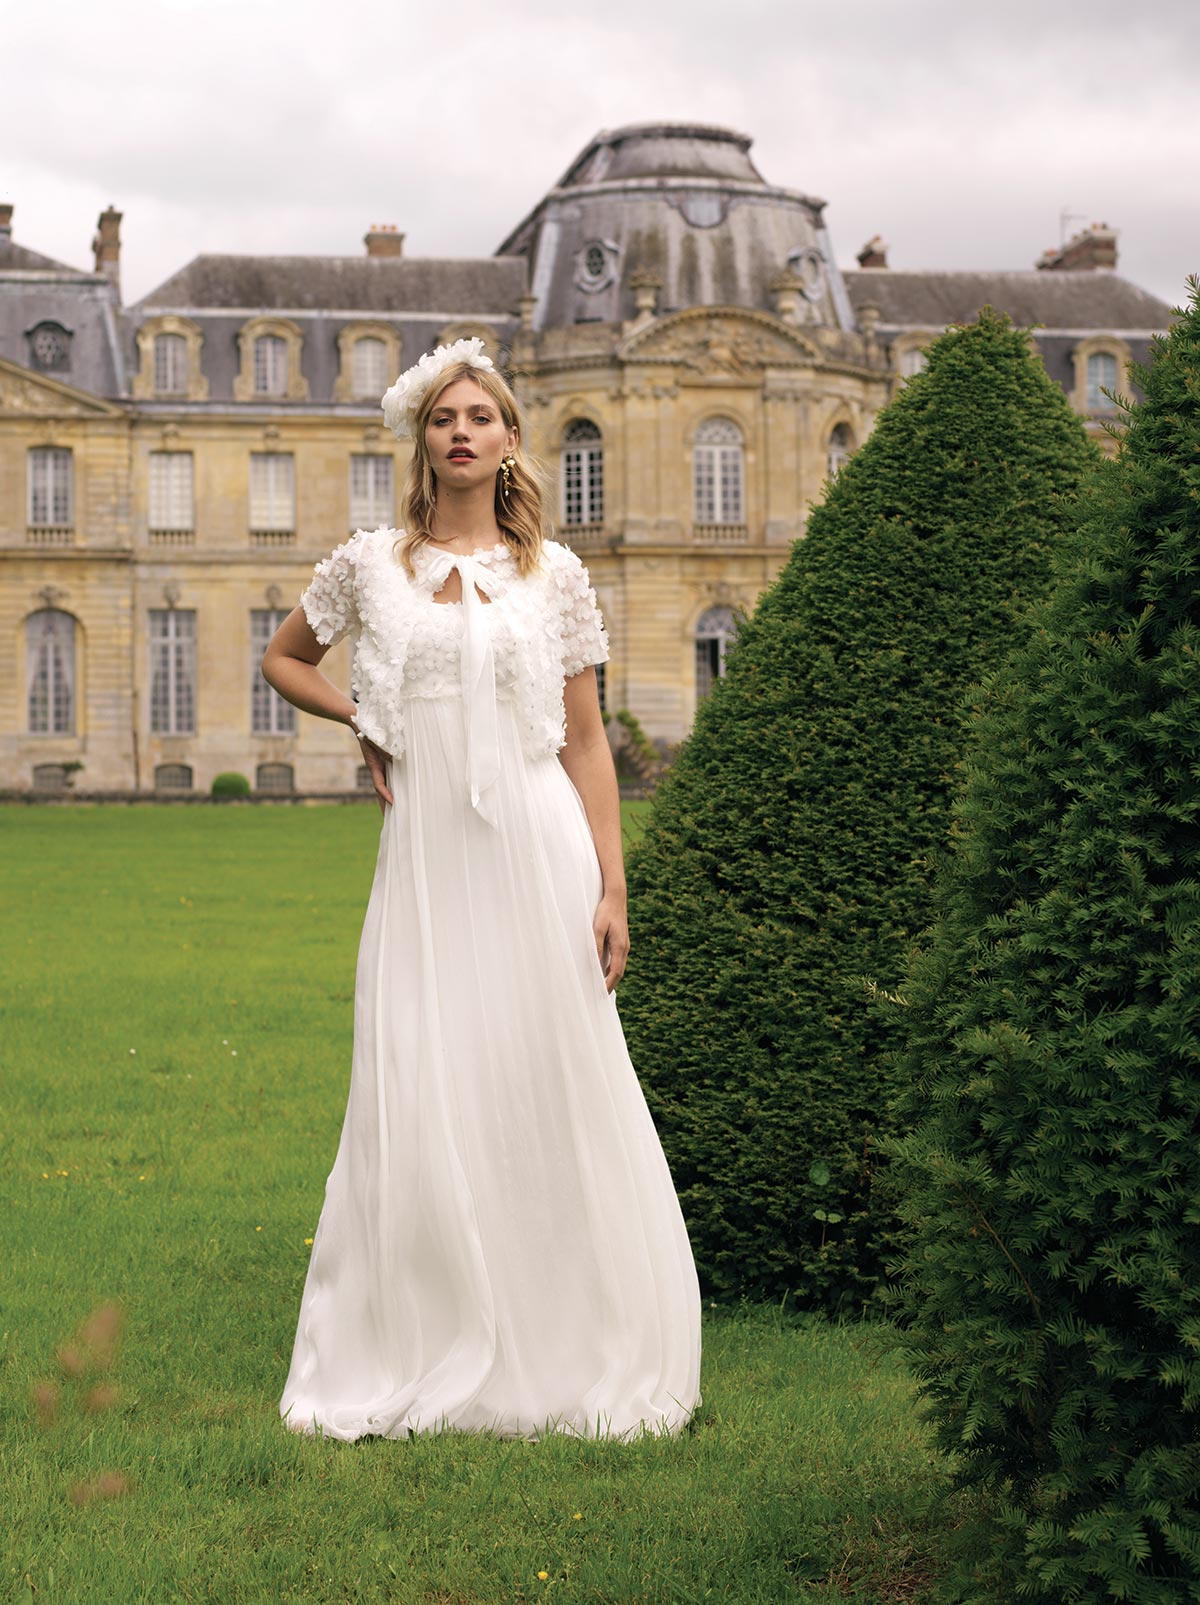 tiphaine-face-robe-marie-laporte-collection-2020